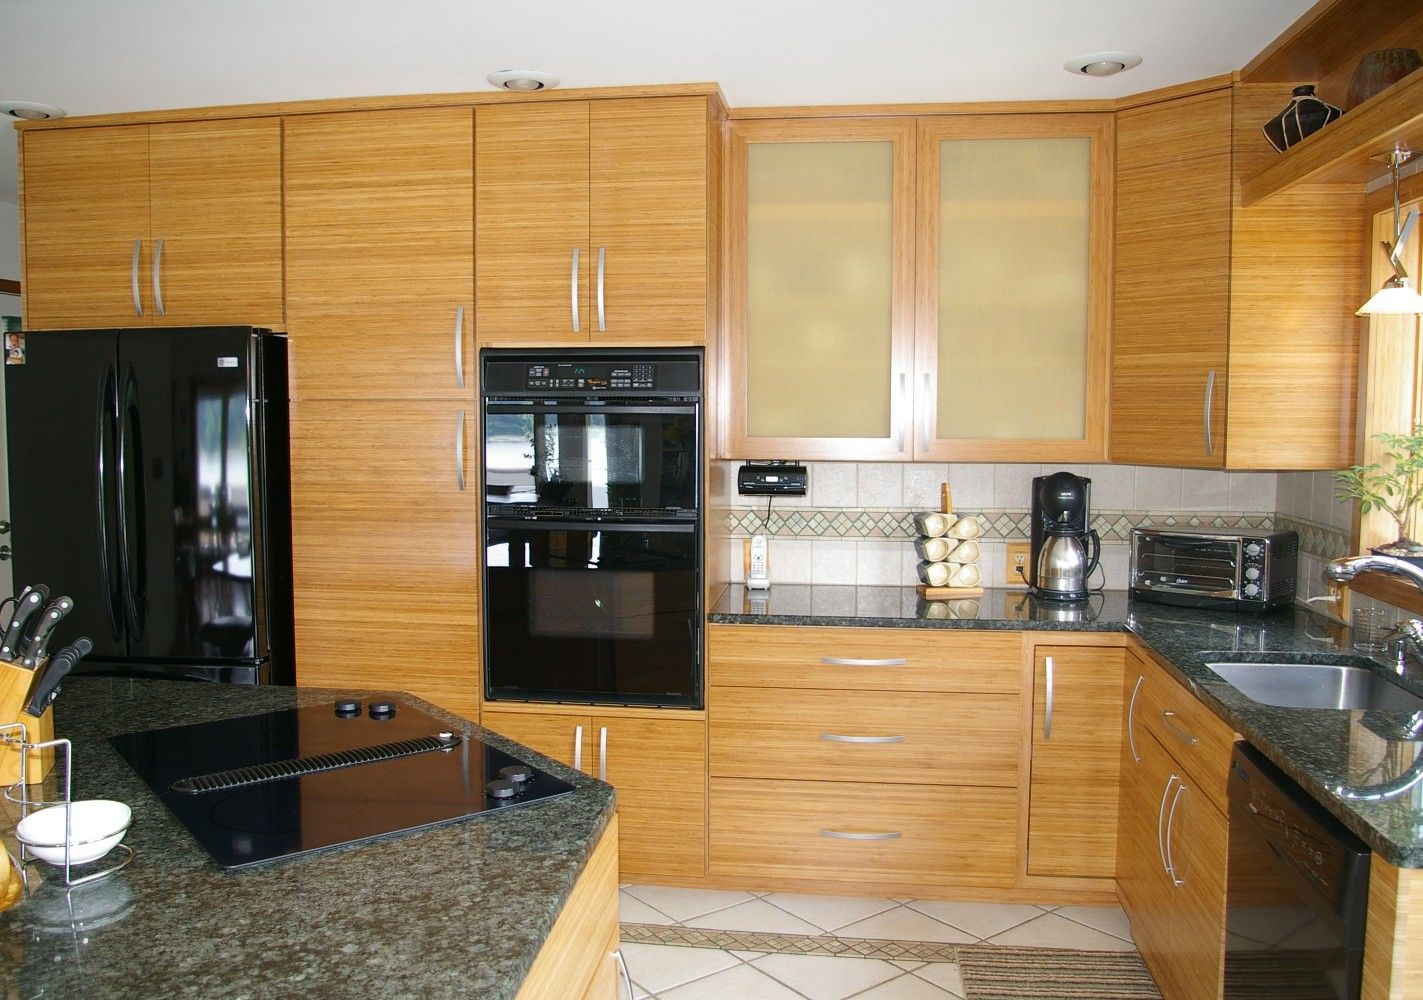 Elegant Home Depot Bamboo Kitchen Cabinets – The Most Stylish and ...